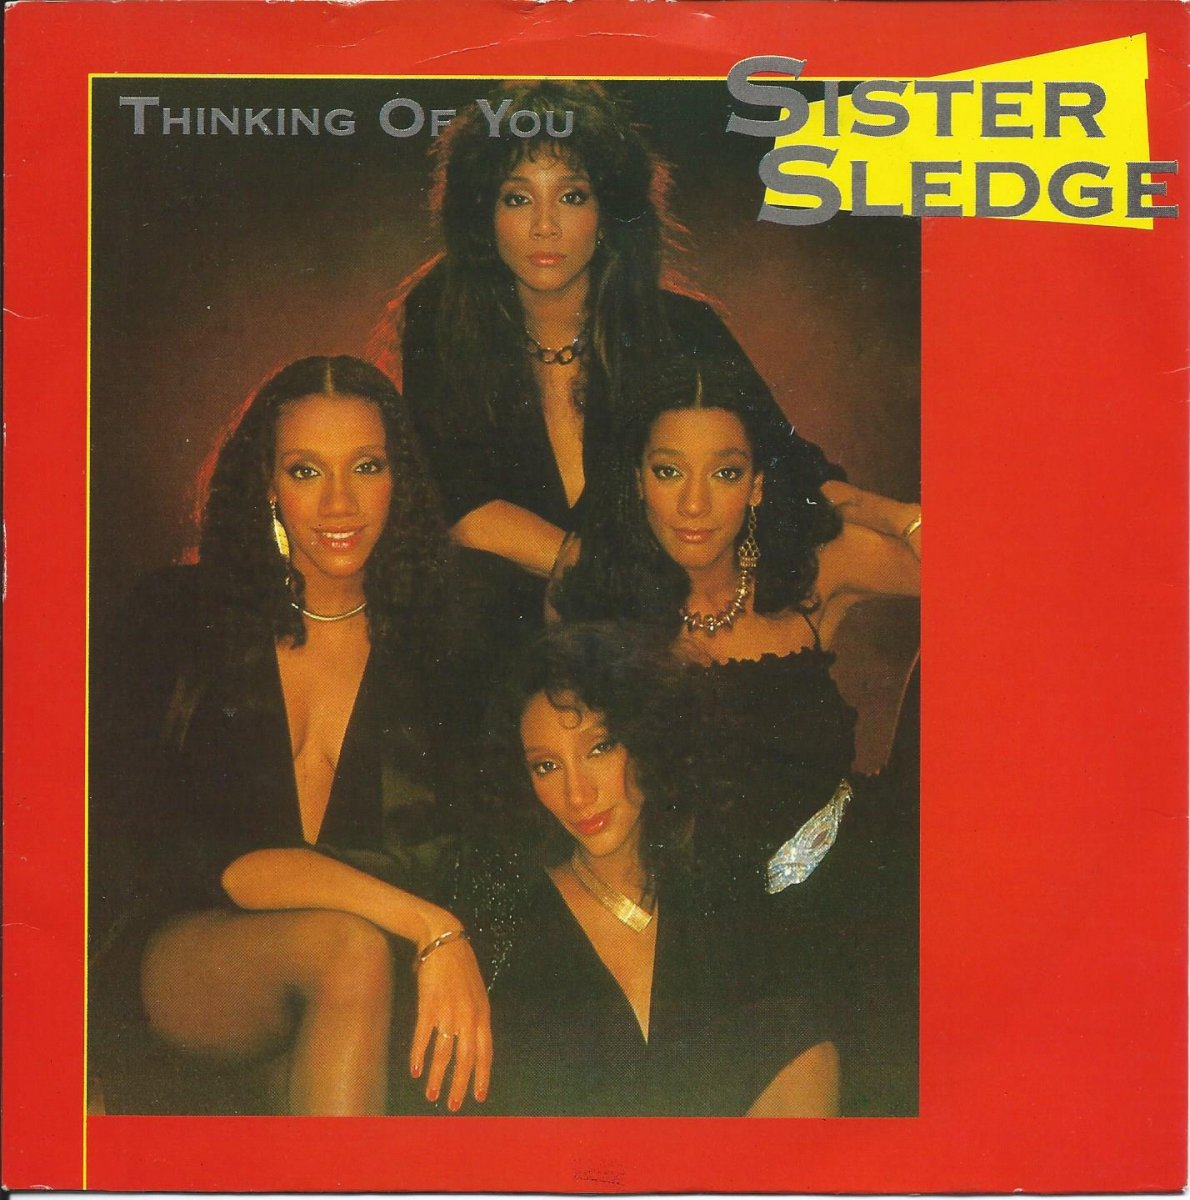 SISTER SLEDGE / THINKING OF YOU / WE ARE FAMILY (7